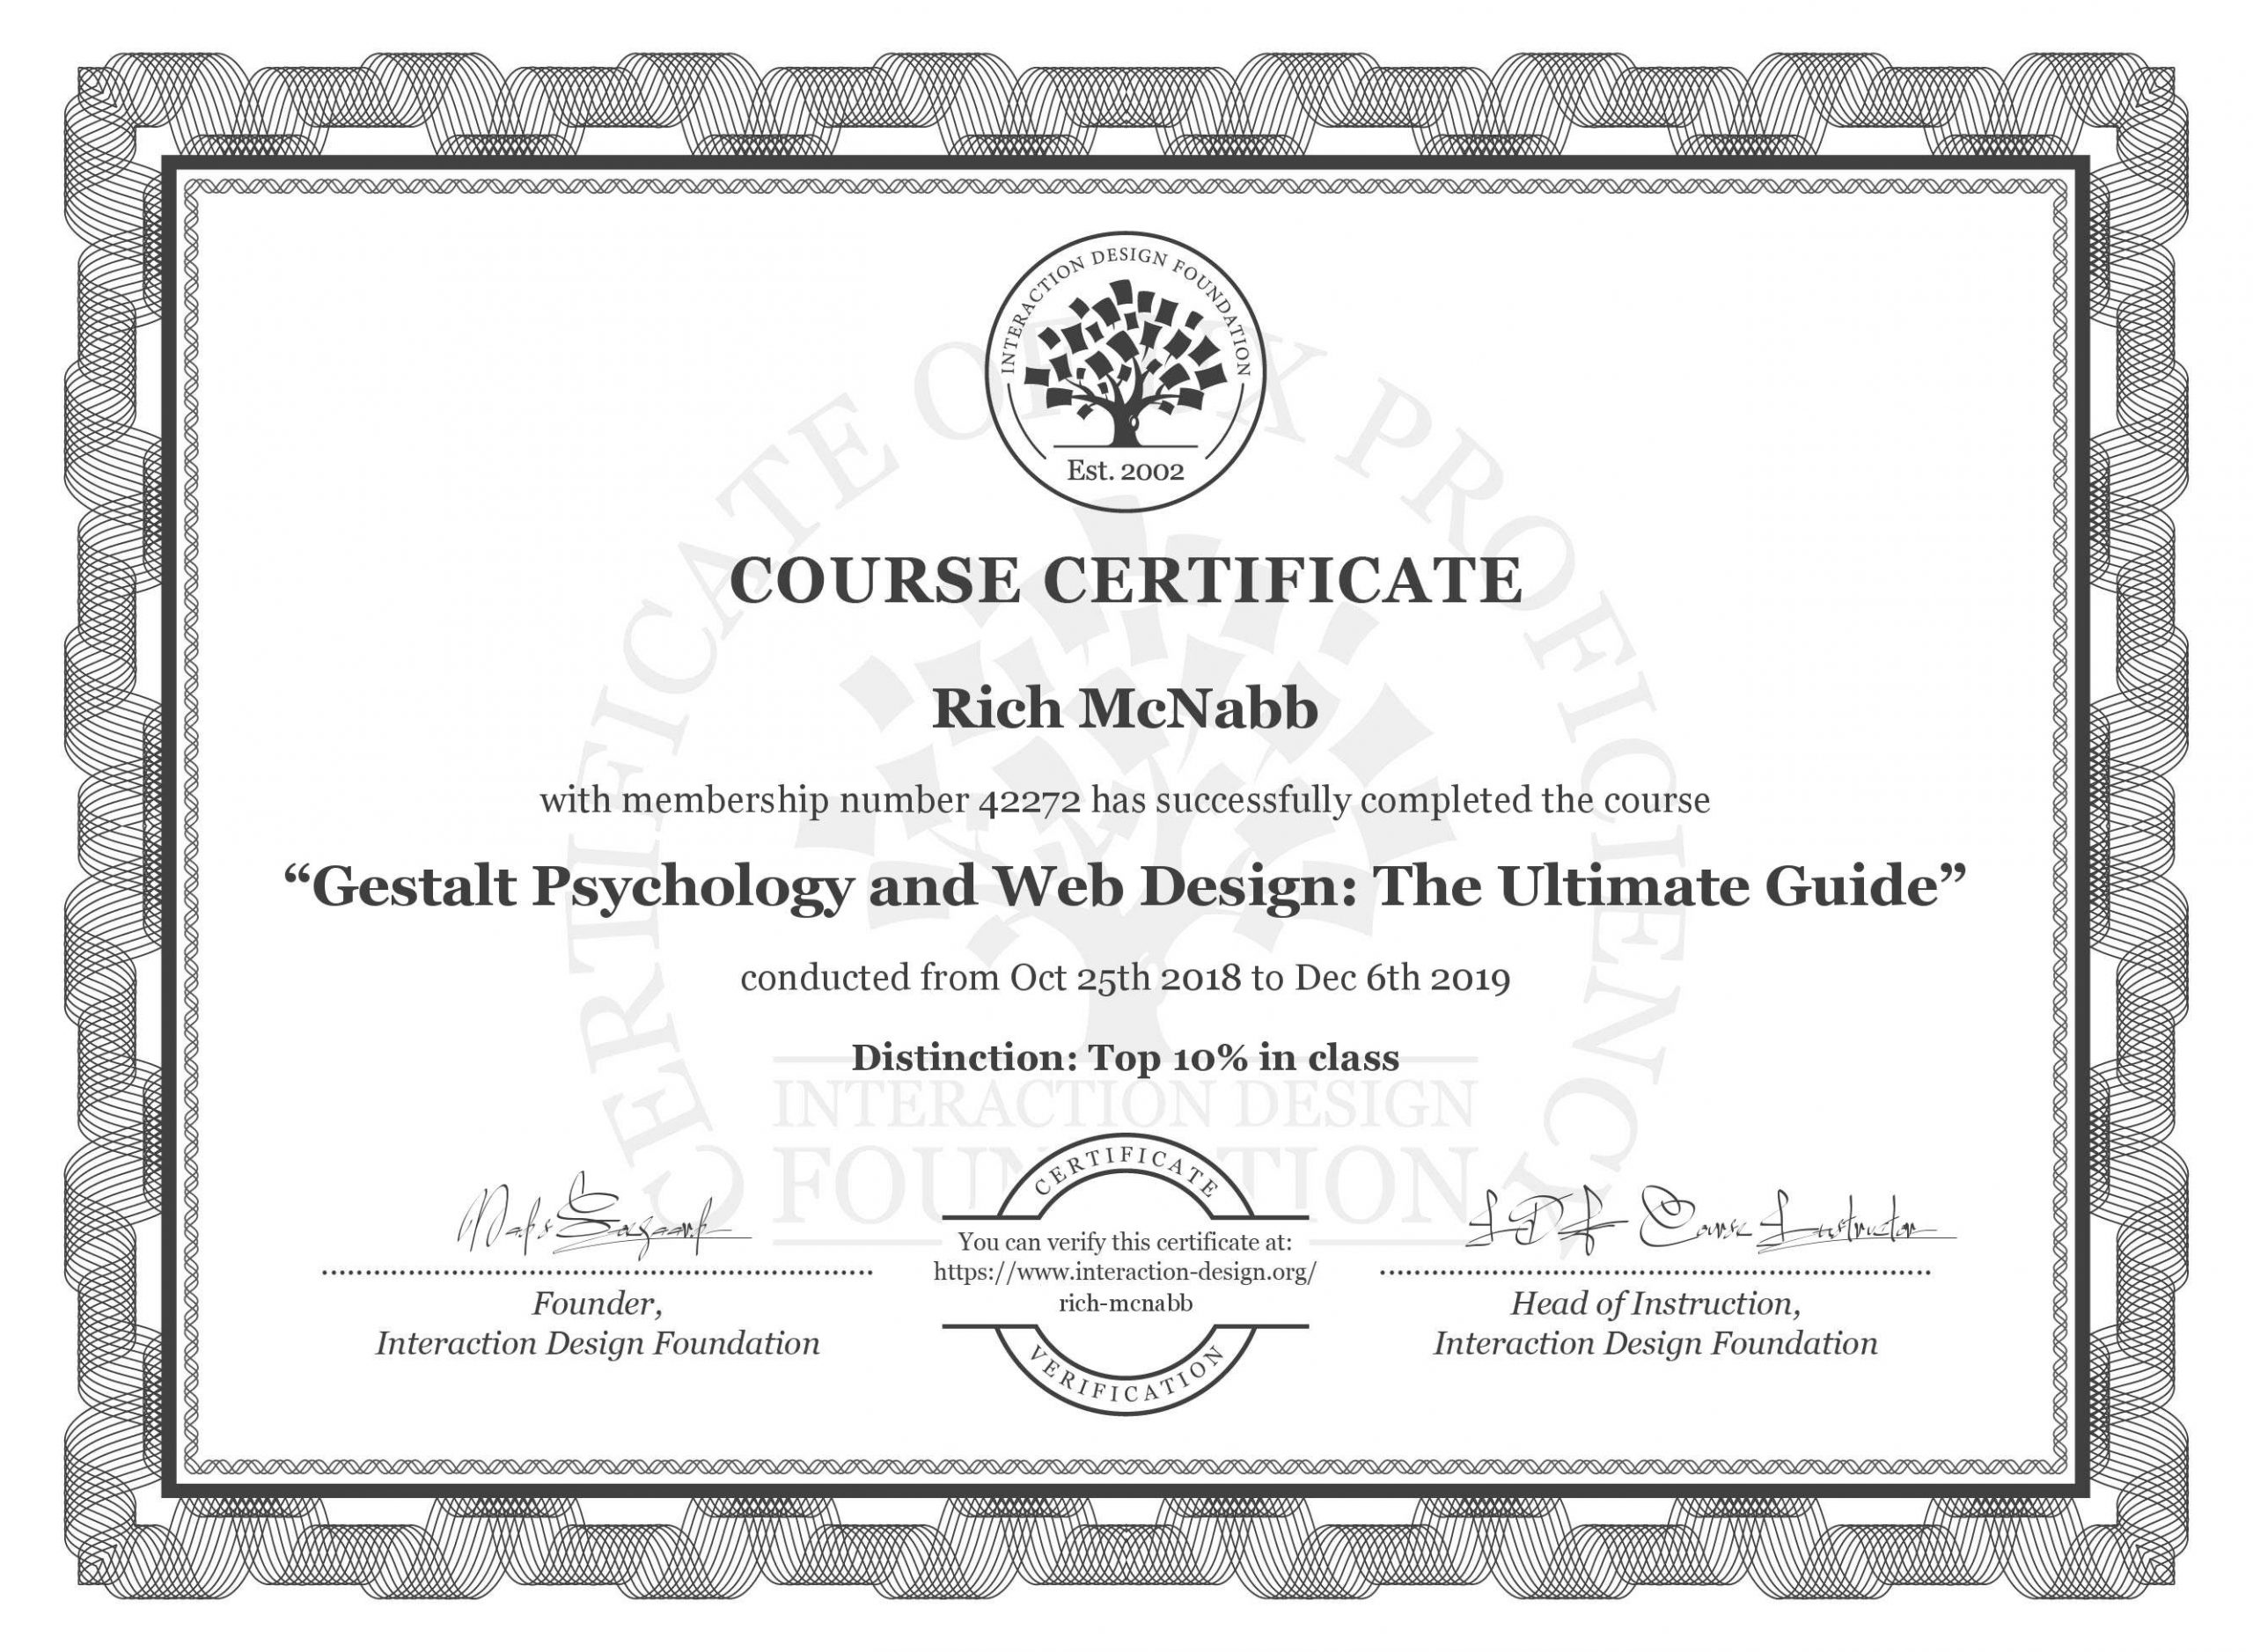 Rich McNabb - Gestalt Psychology and Web Design - The Ultimate Guide